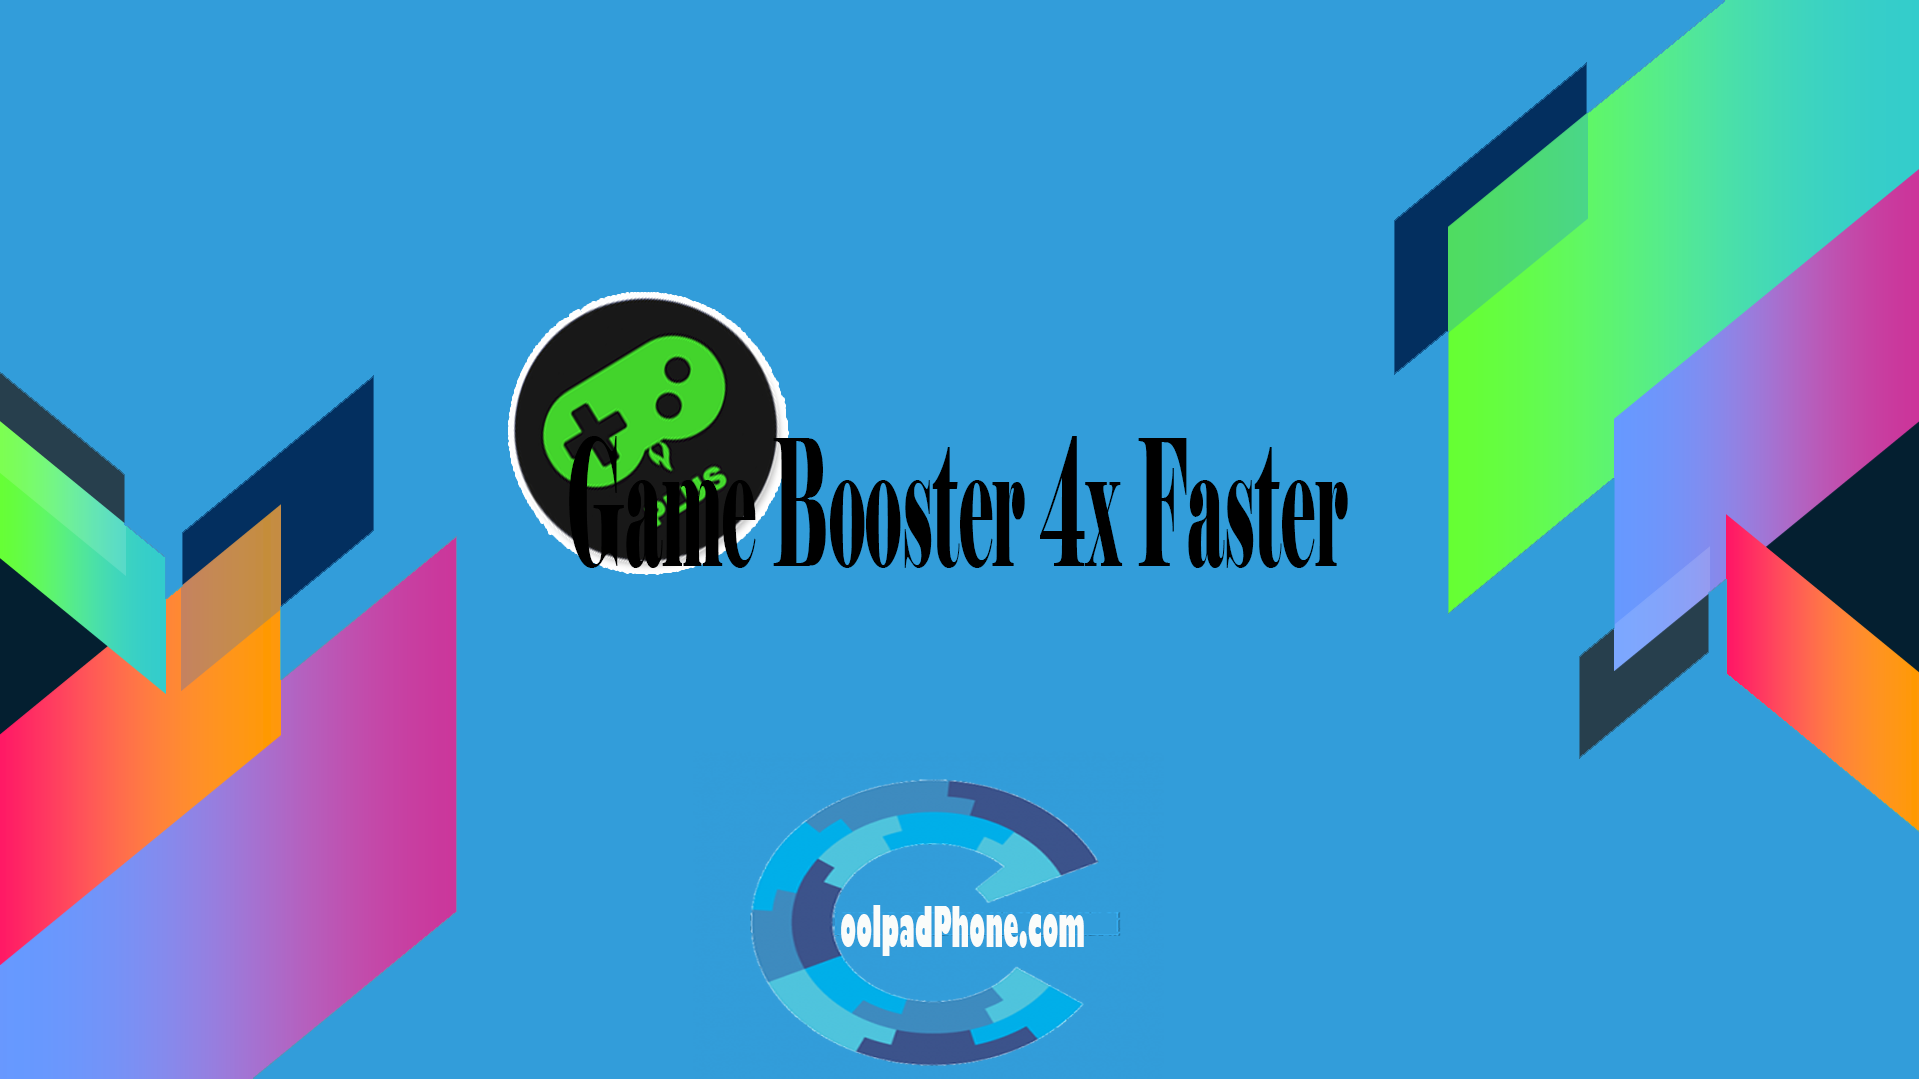 Game Booster 4x Faster